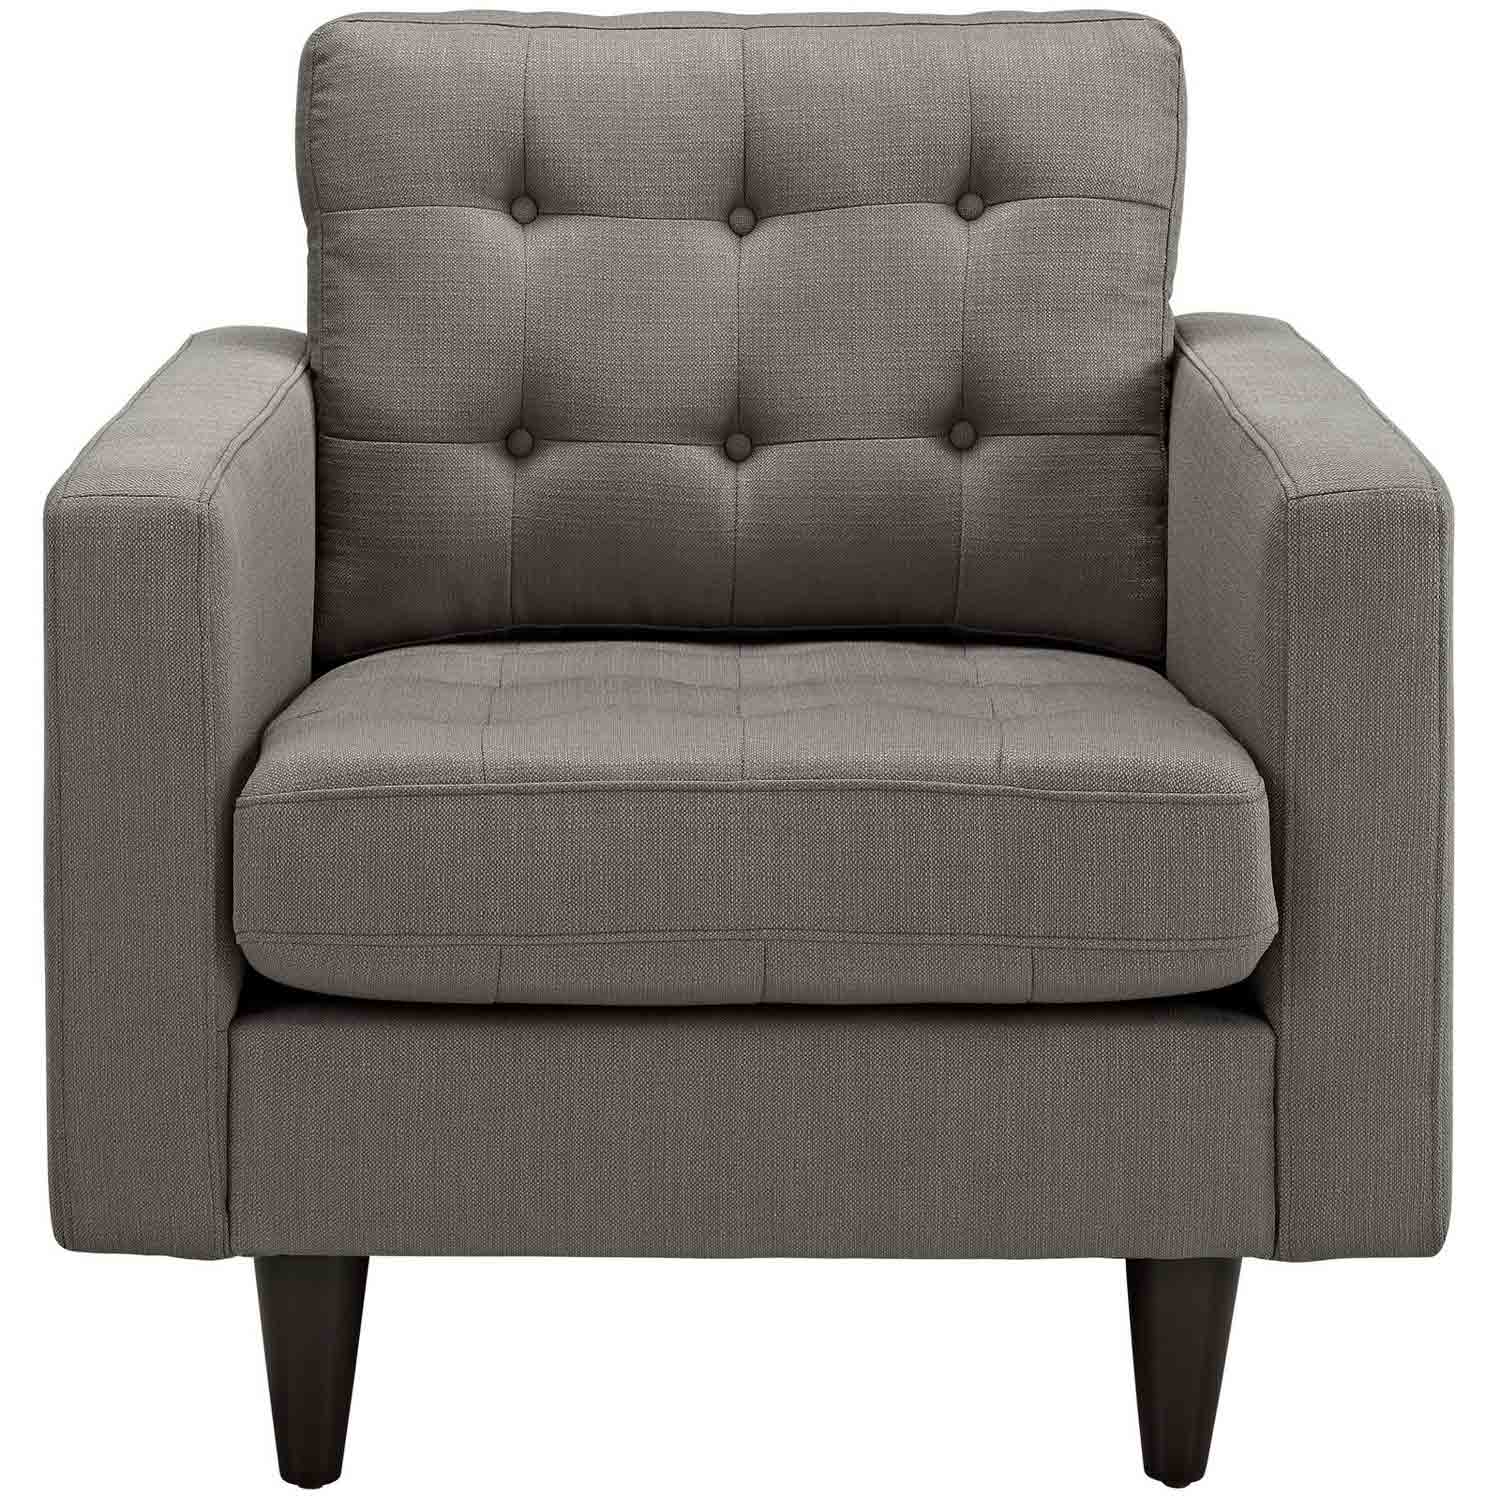 Modway Empress Upholstered Armchair - Granite